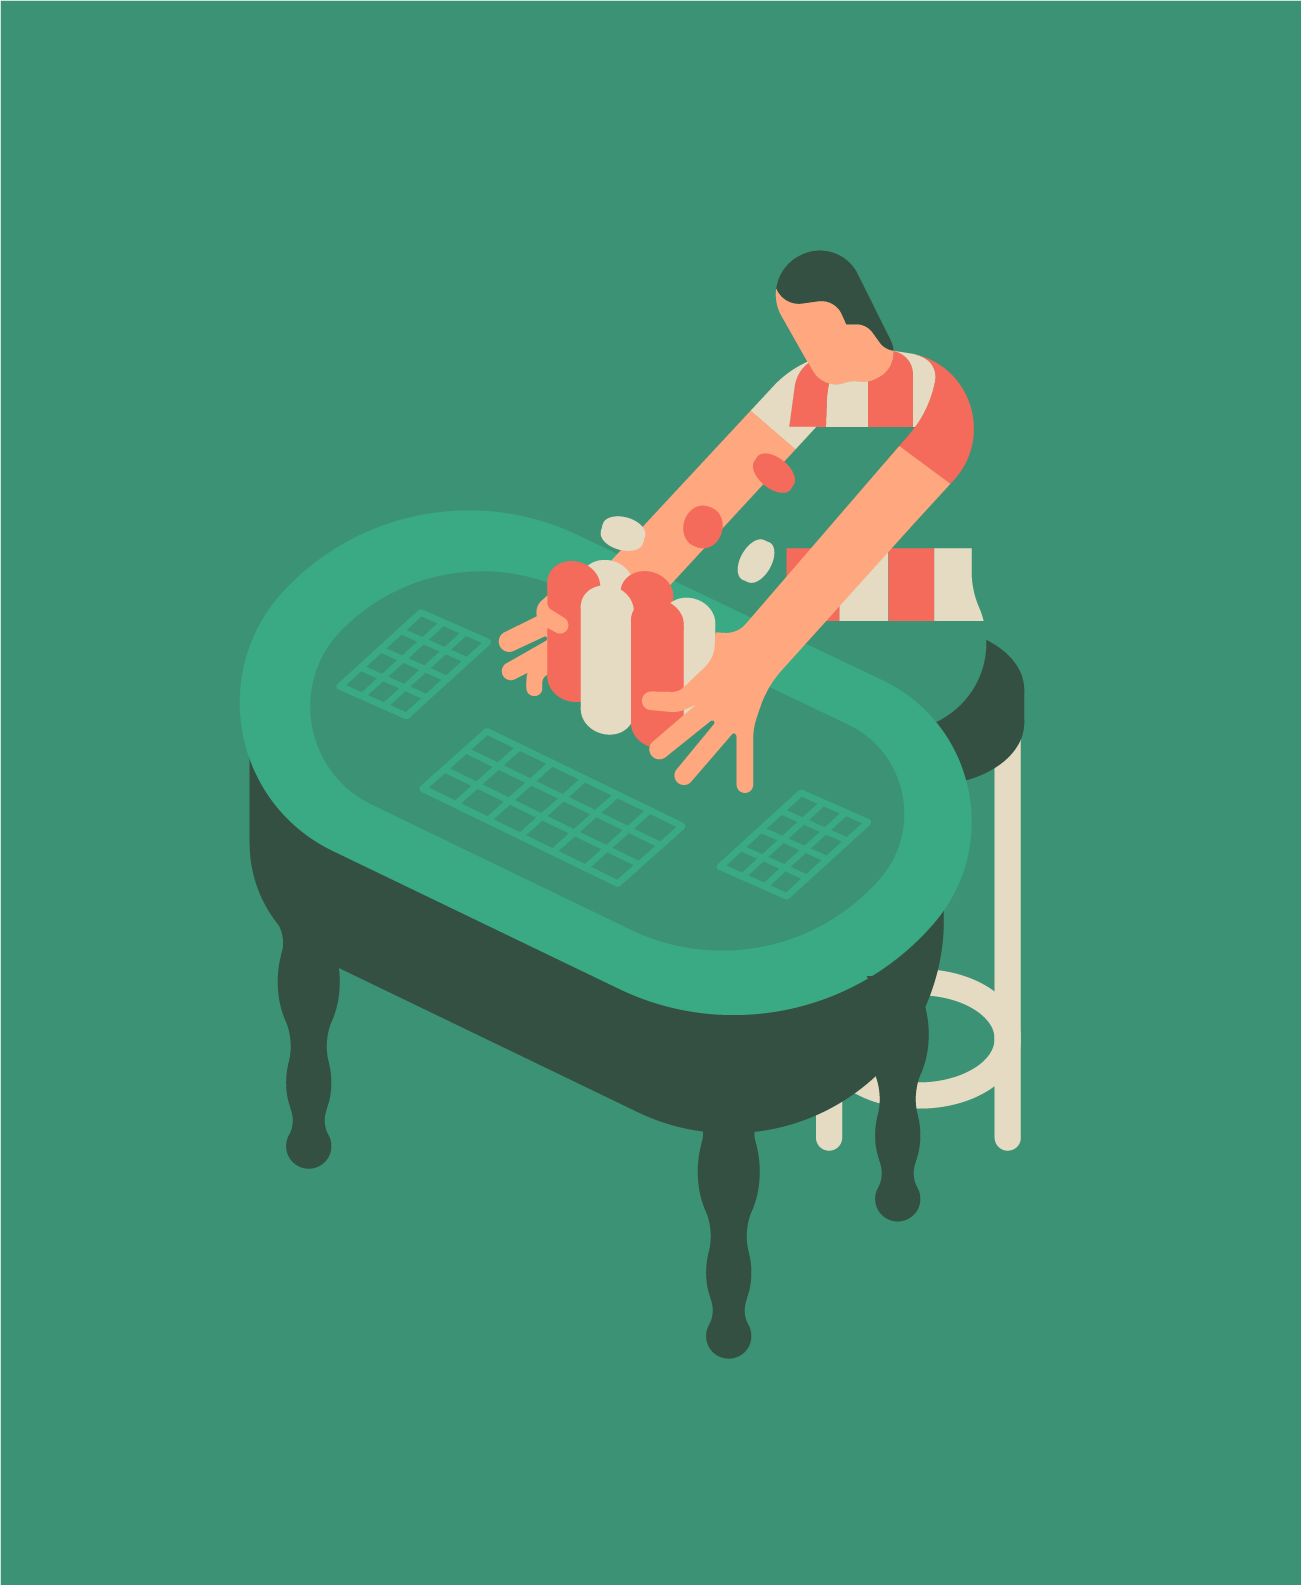 All in. Personal work